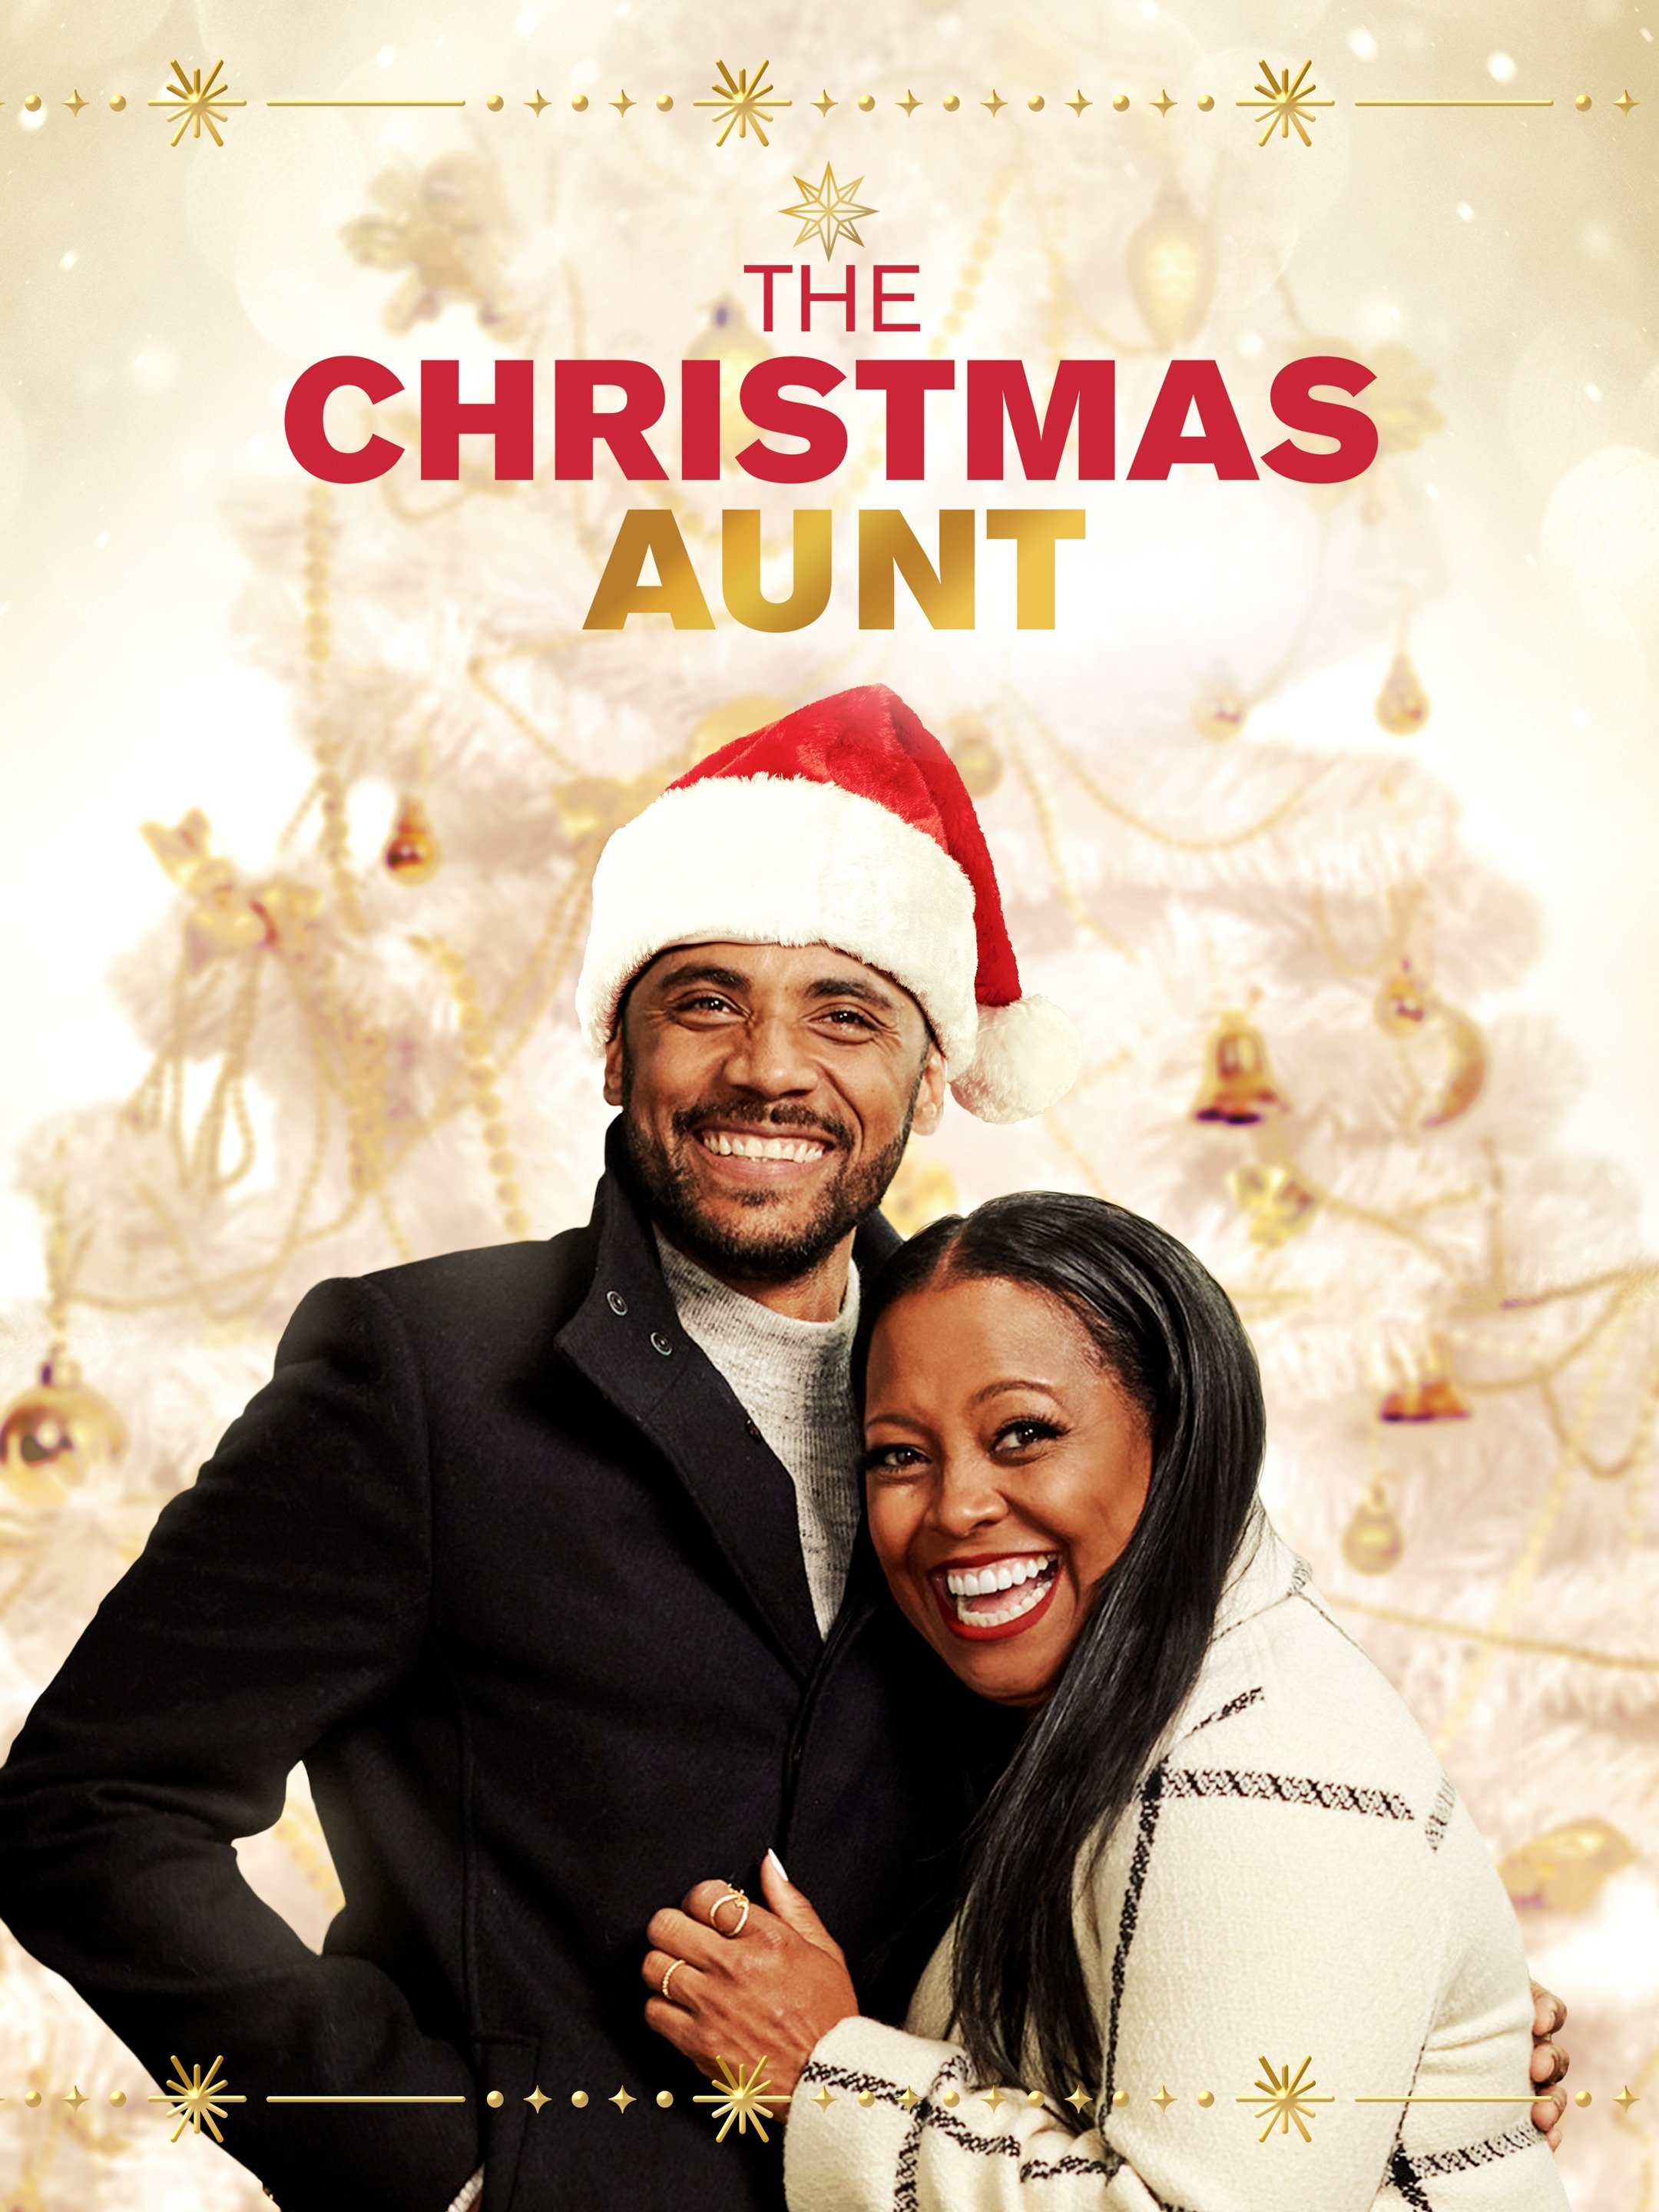 The Christmas Aunt hd on soap2day